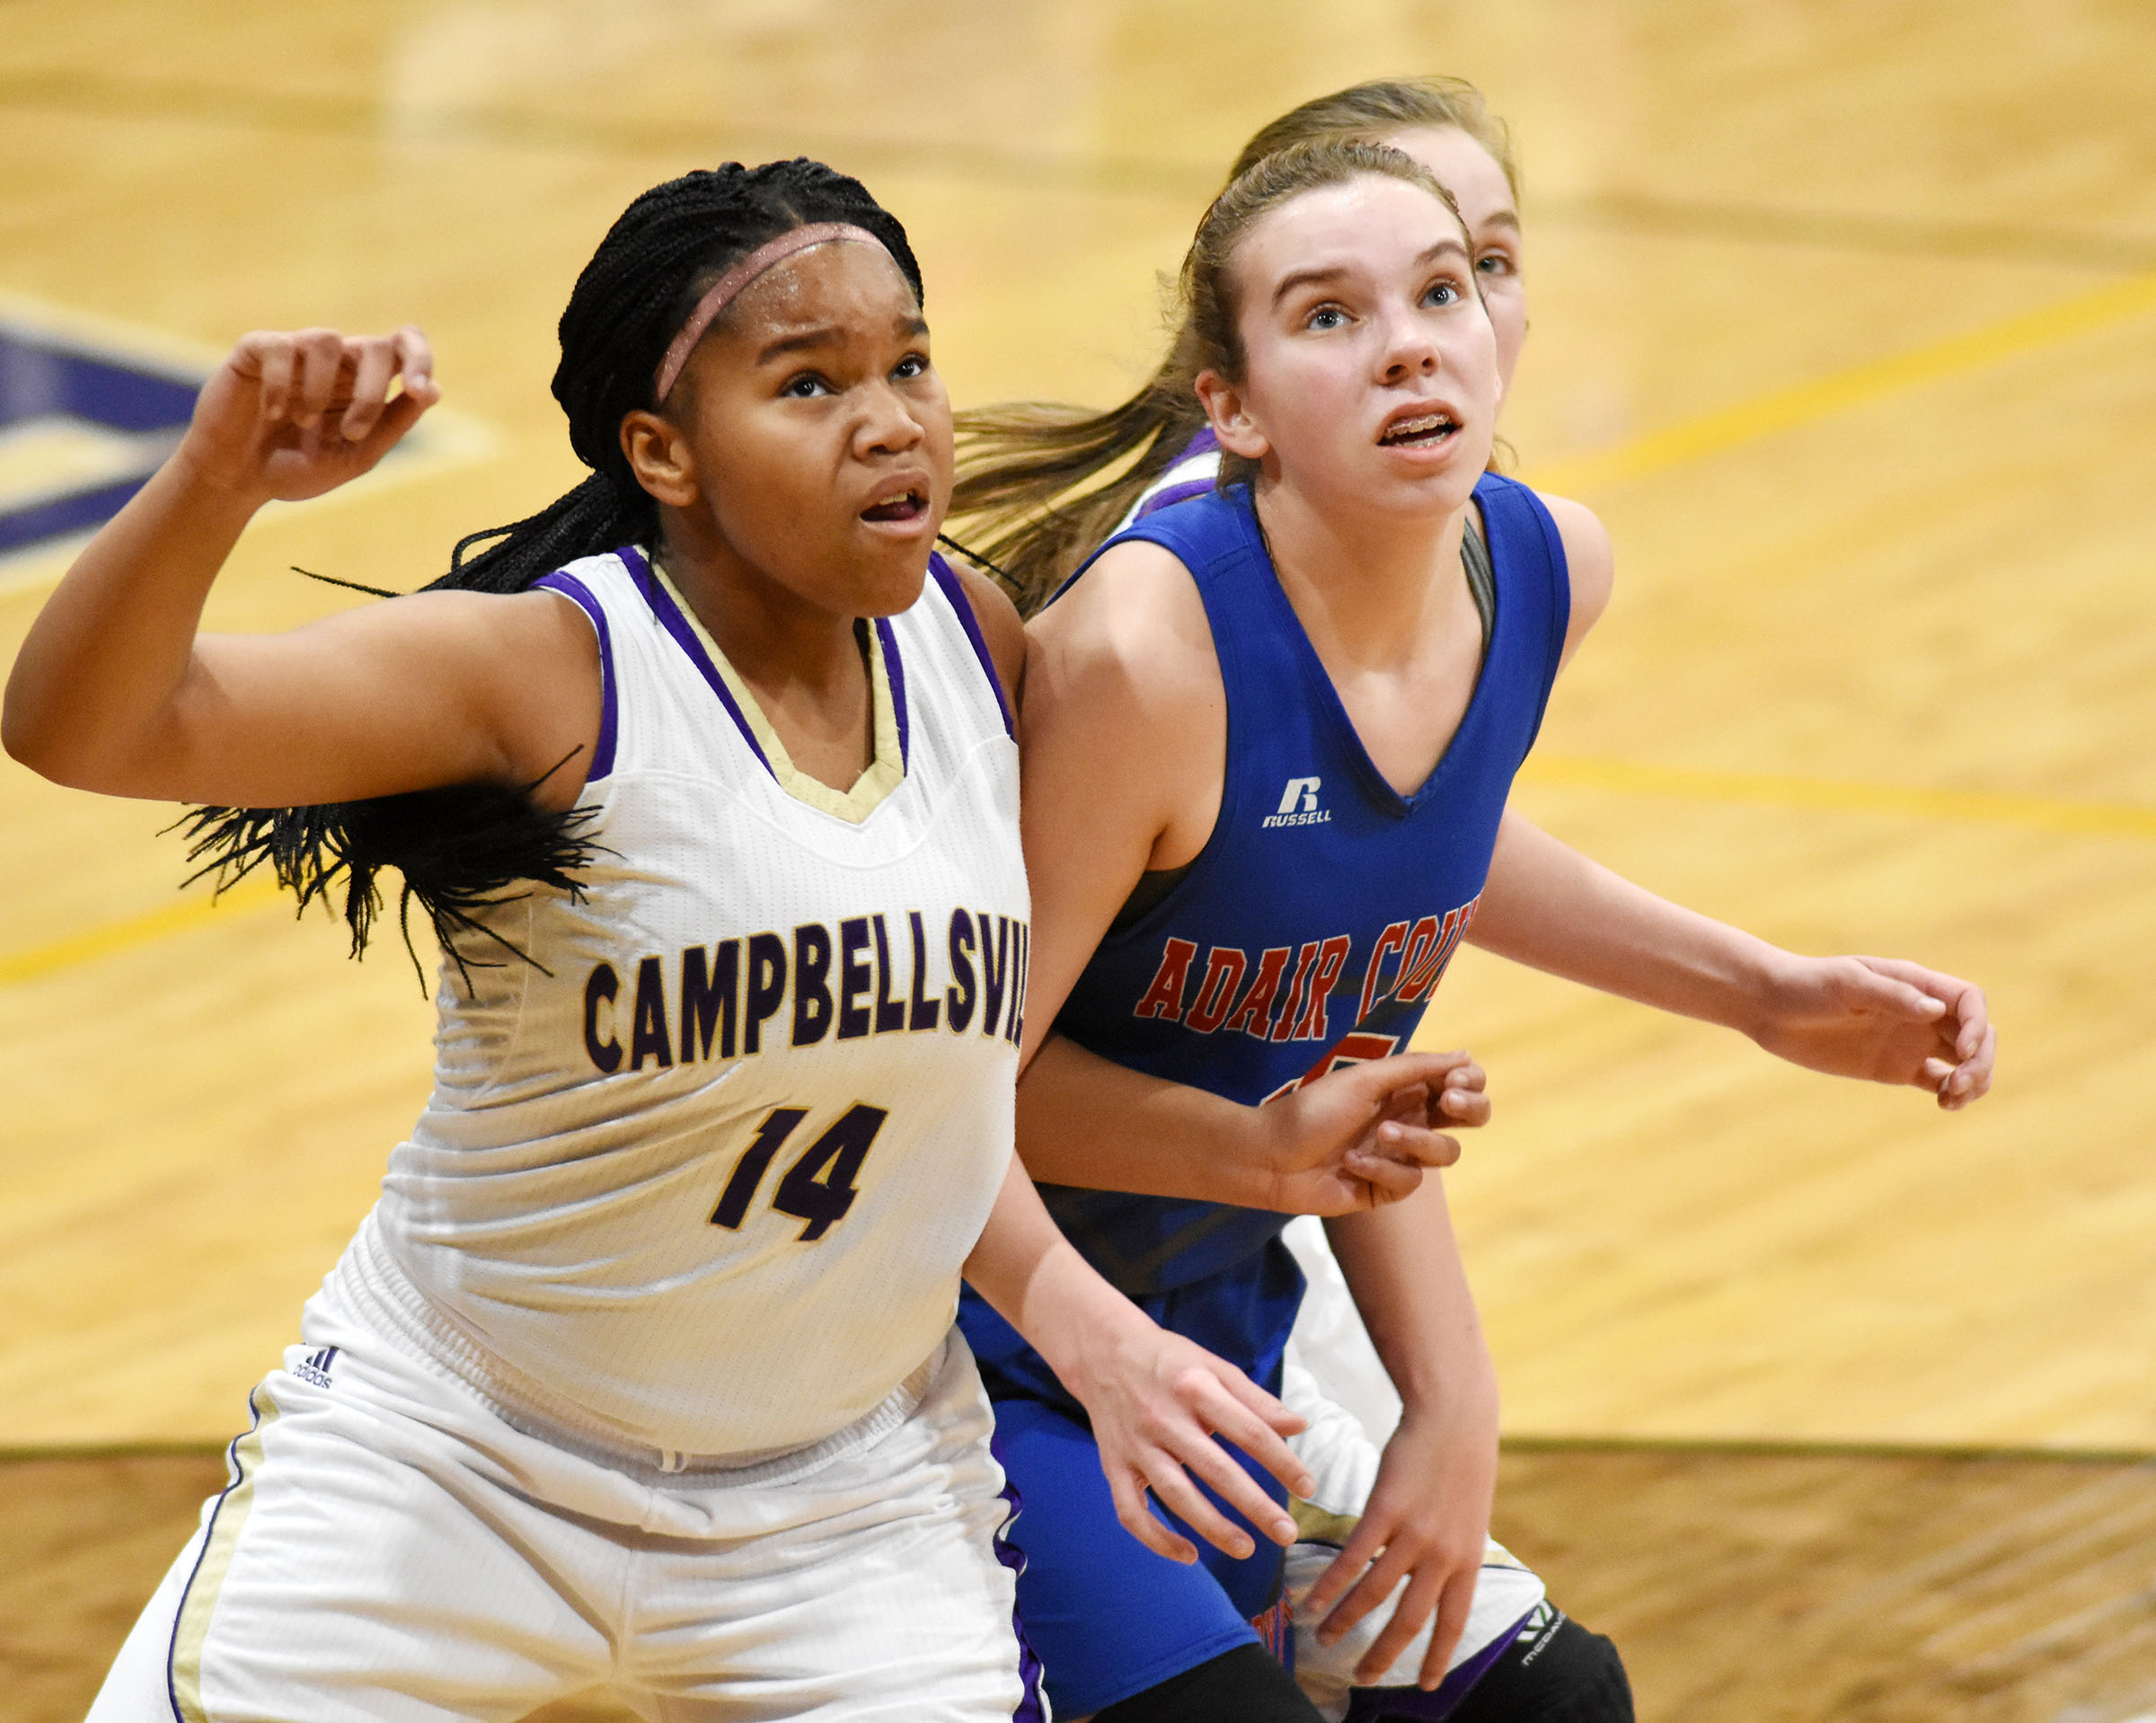 Campbellsville Middle School seventh-grader Antaya Epps looks for a rebound.